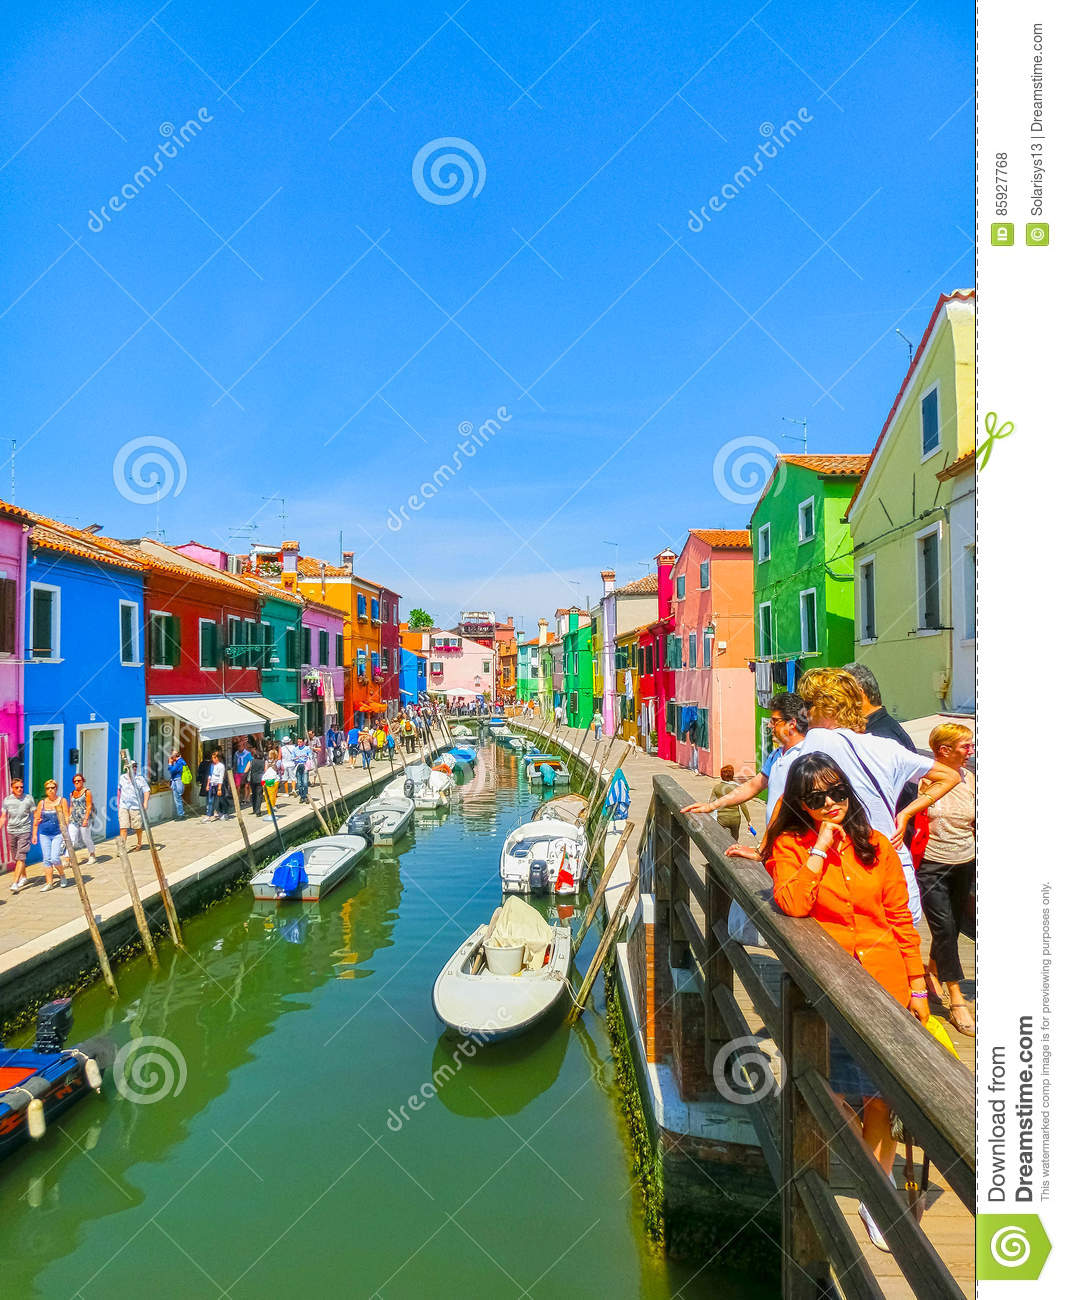 Colorful burano italy burano tourism - Burano Venice Italy May 10 2014 Colorful Old Houses On The